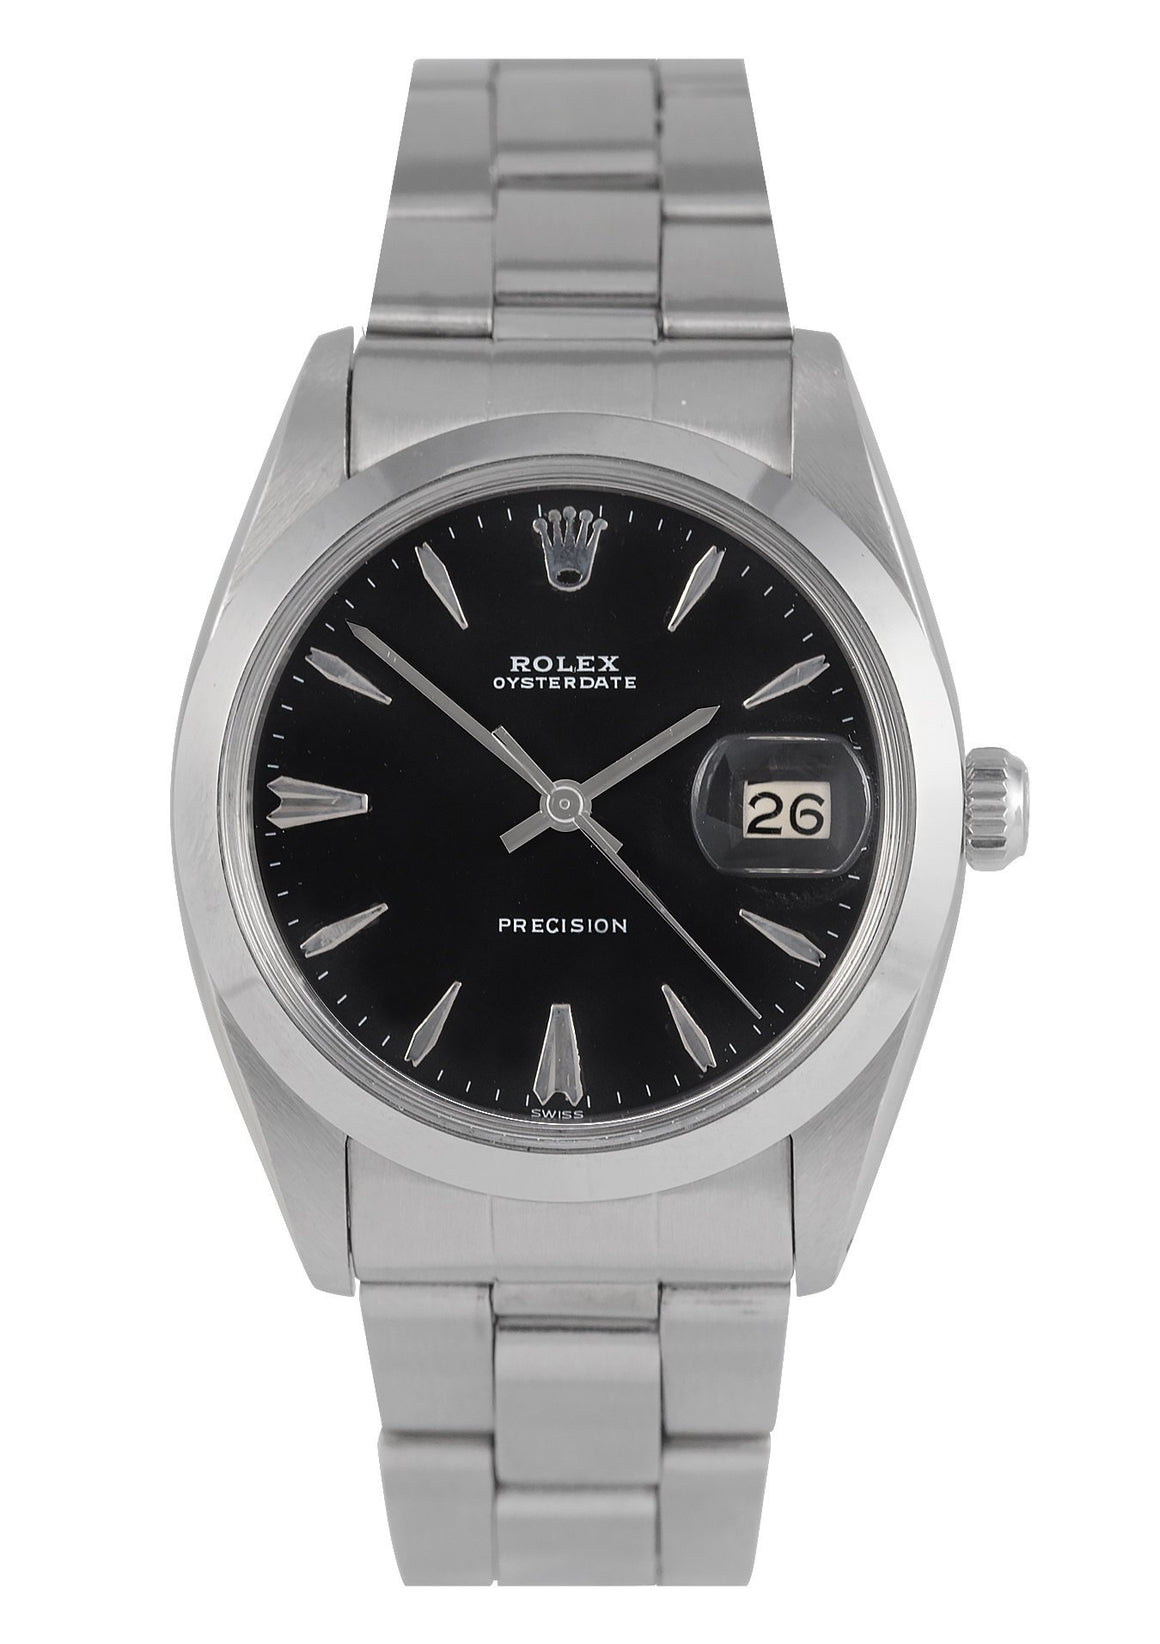 Rolex Oysterdate Precision Steel Watch with Black Dial, Ref: 6694